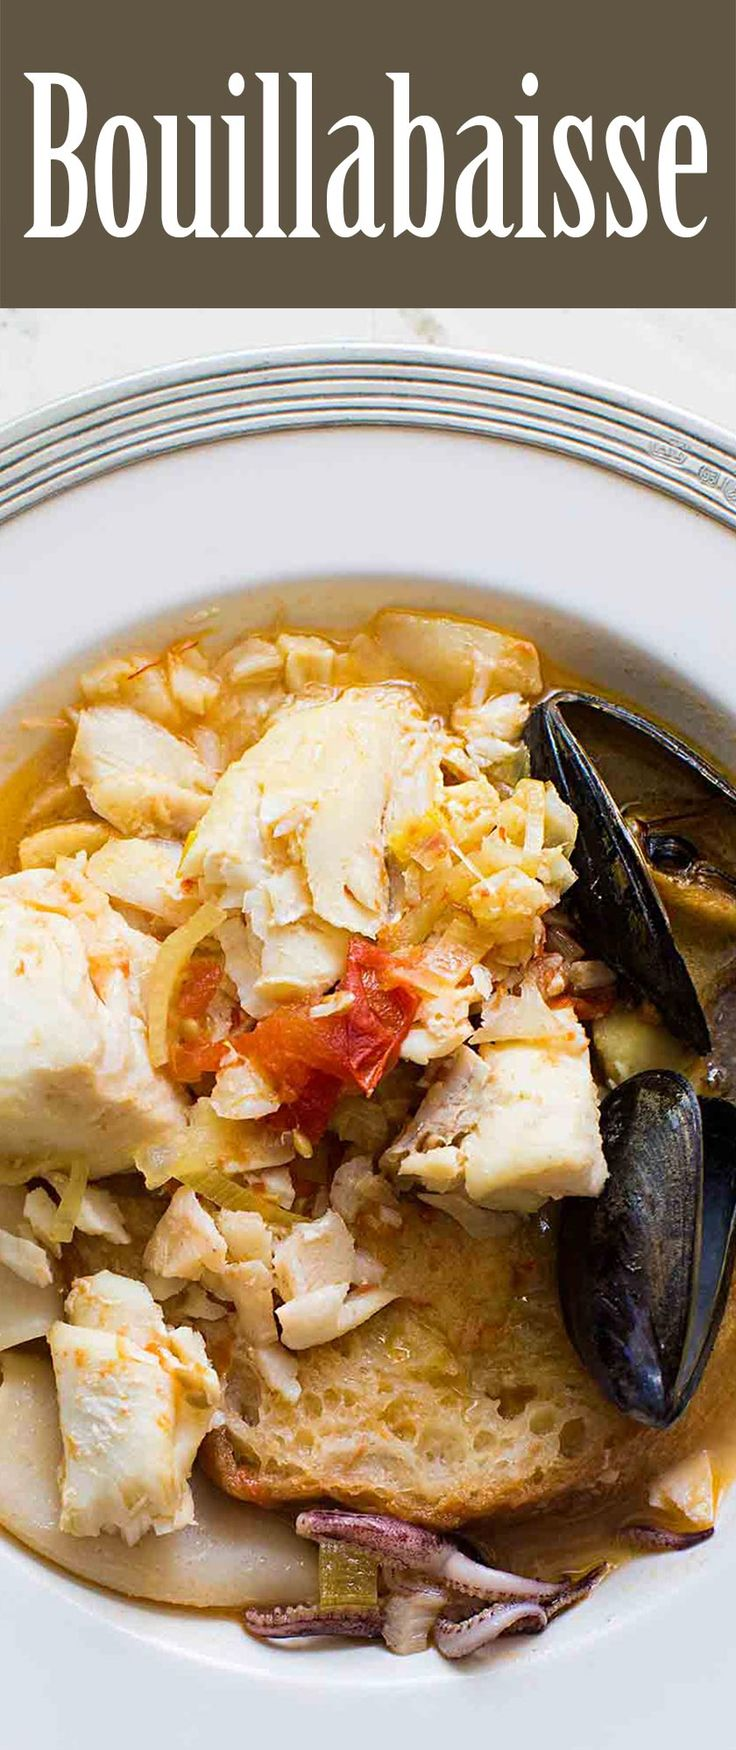 17 best images about talk soup on pinterest noodle soups for French fish recipes